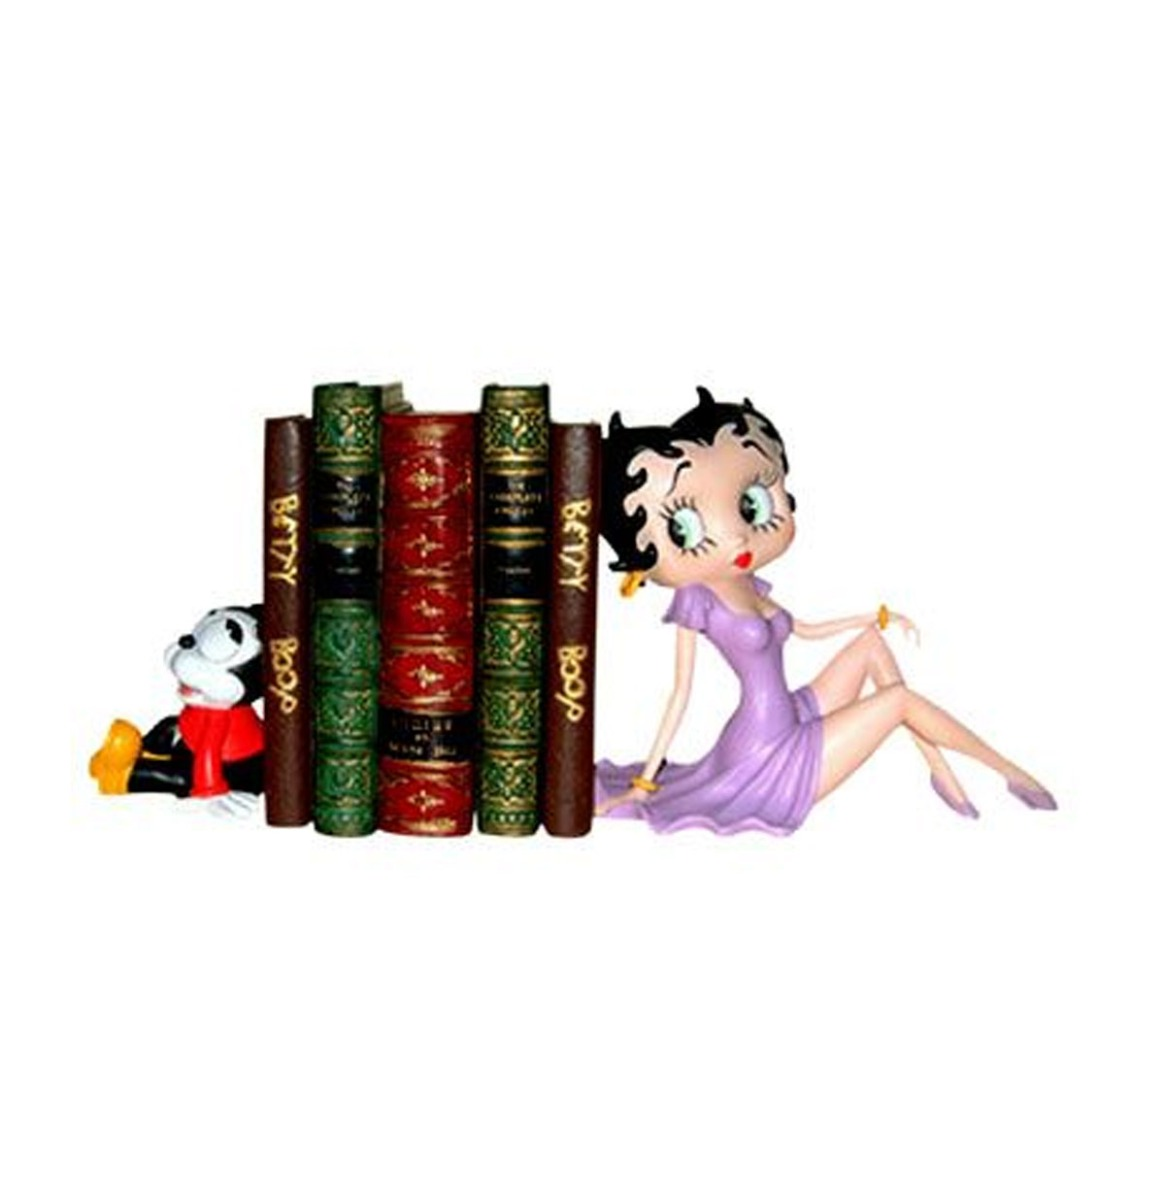 Betty Boop en Bimbo Resin Boekensteunen Set